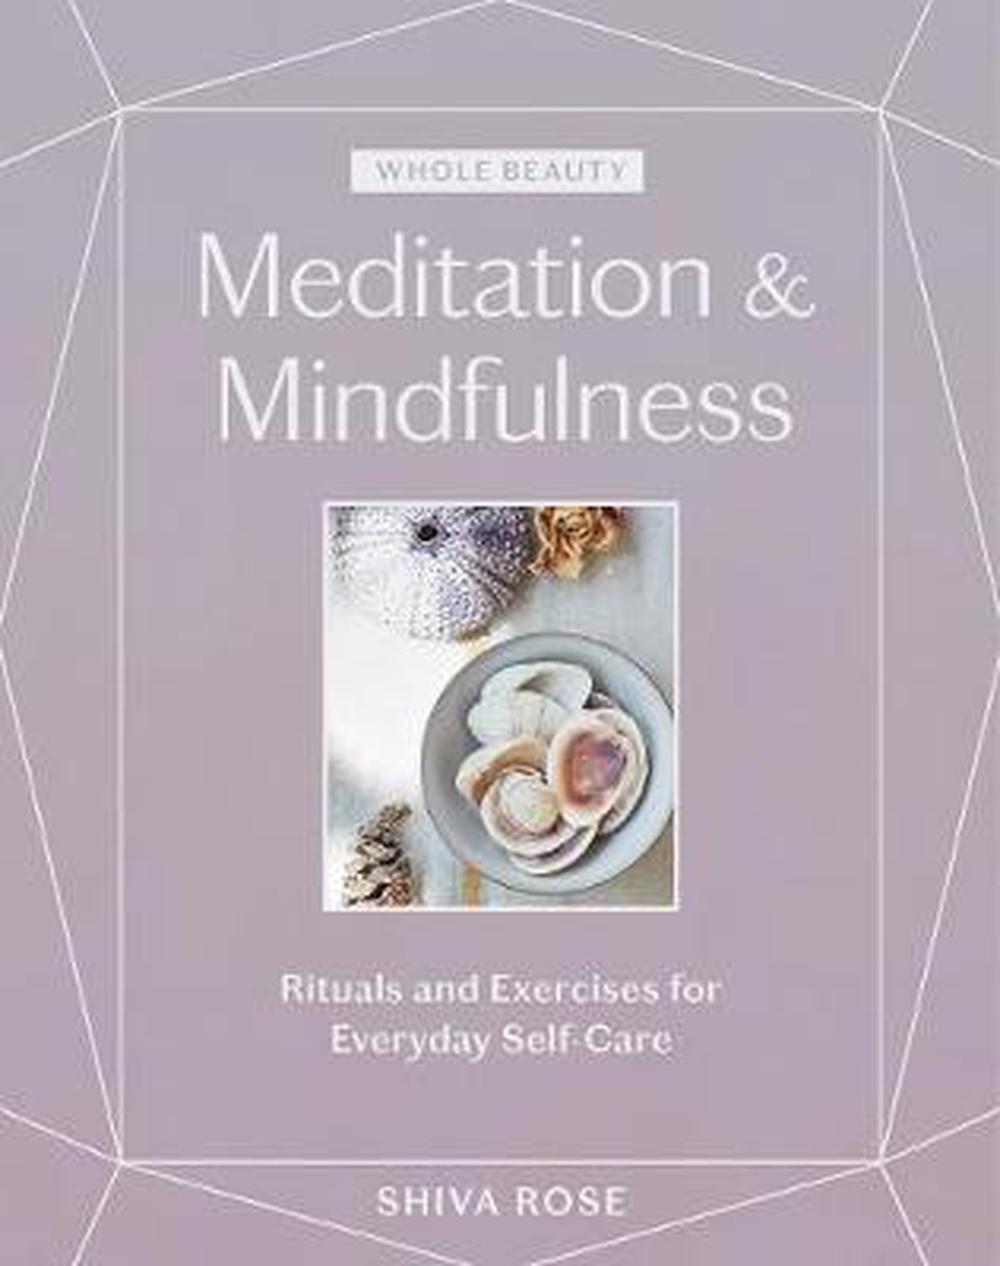 Whole Beauty: Meditations & Mindfulness